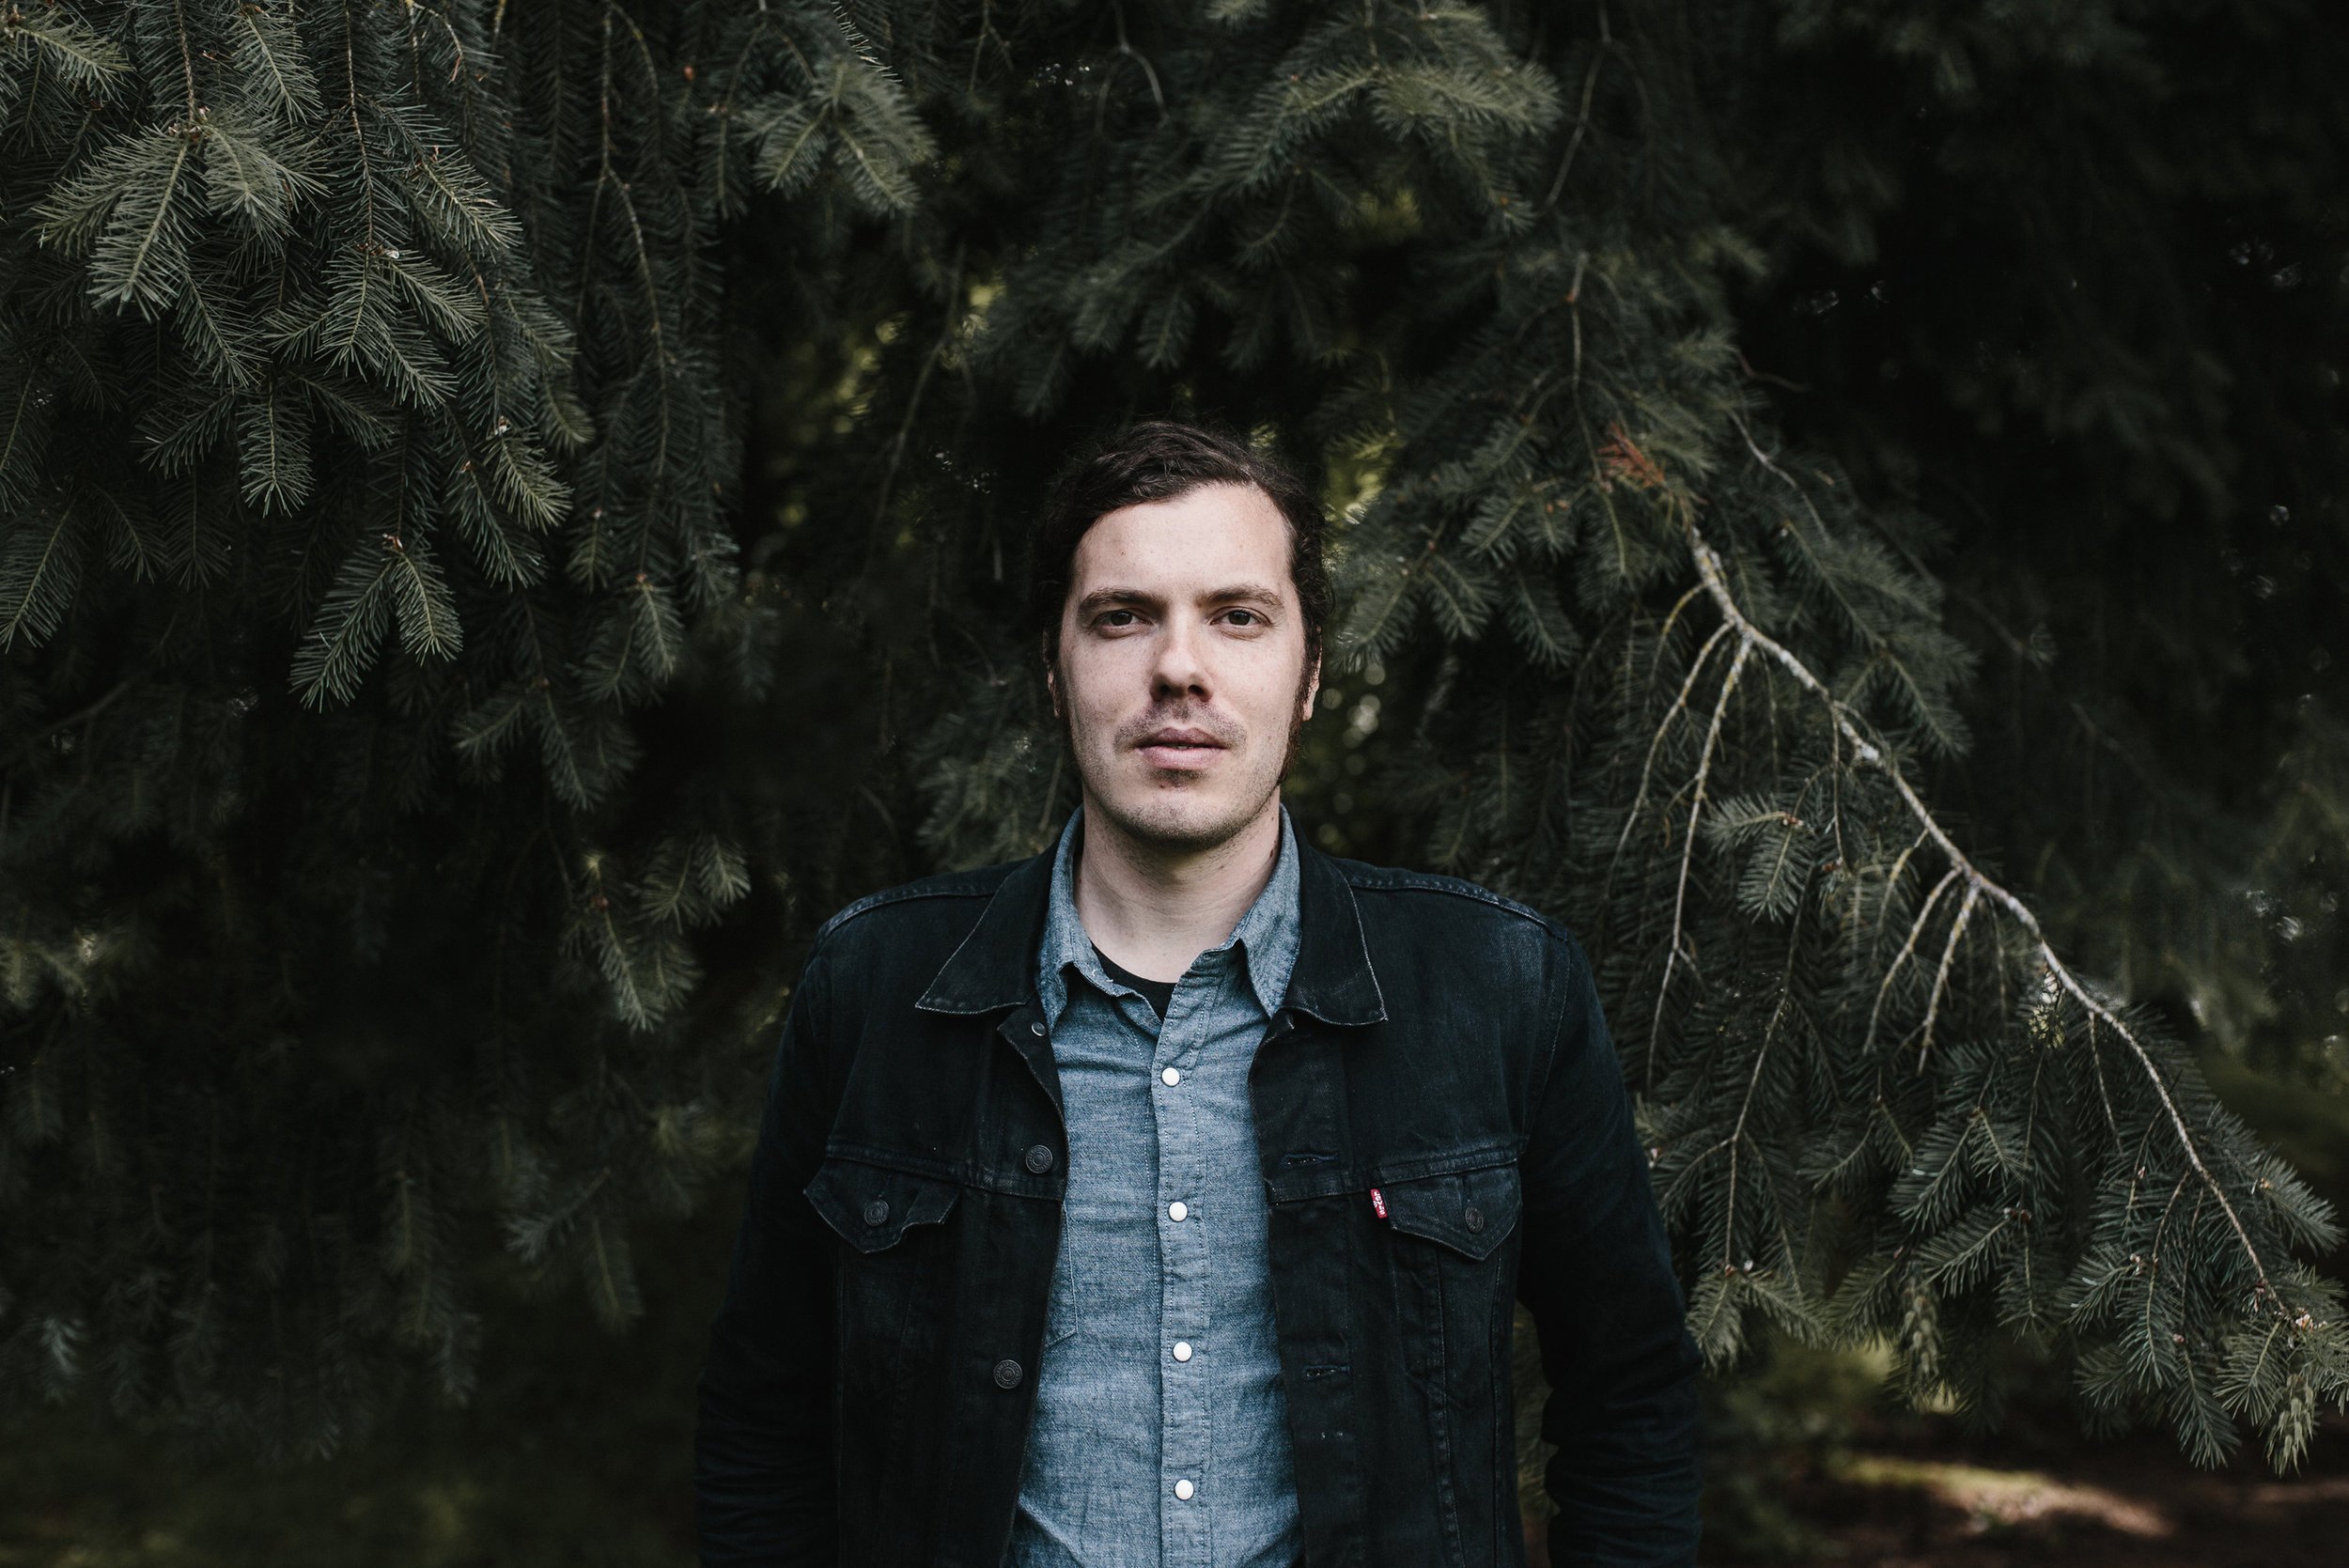 Josh Garrels   has spent more than a decade crafting music that cuts clean through. Resting in the space between accessibility and honesty, Garrels' songs wrestle with and celebrate the mystery of faith with authenticity and heart. Cultivating a genre-blending mix of folk and hip hop, Garrels' music explores themes of compassion, hope, longing, and liberation.